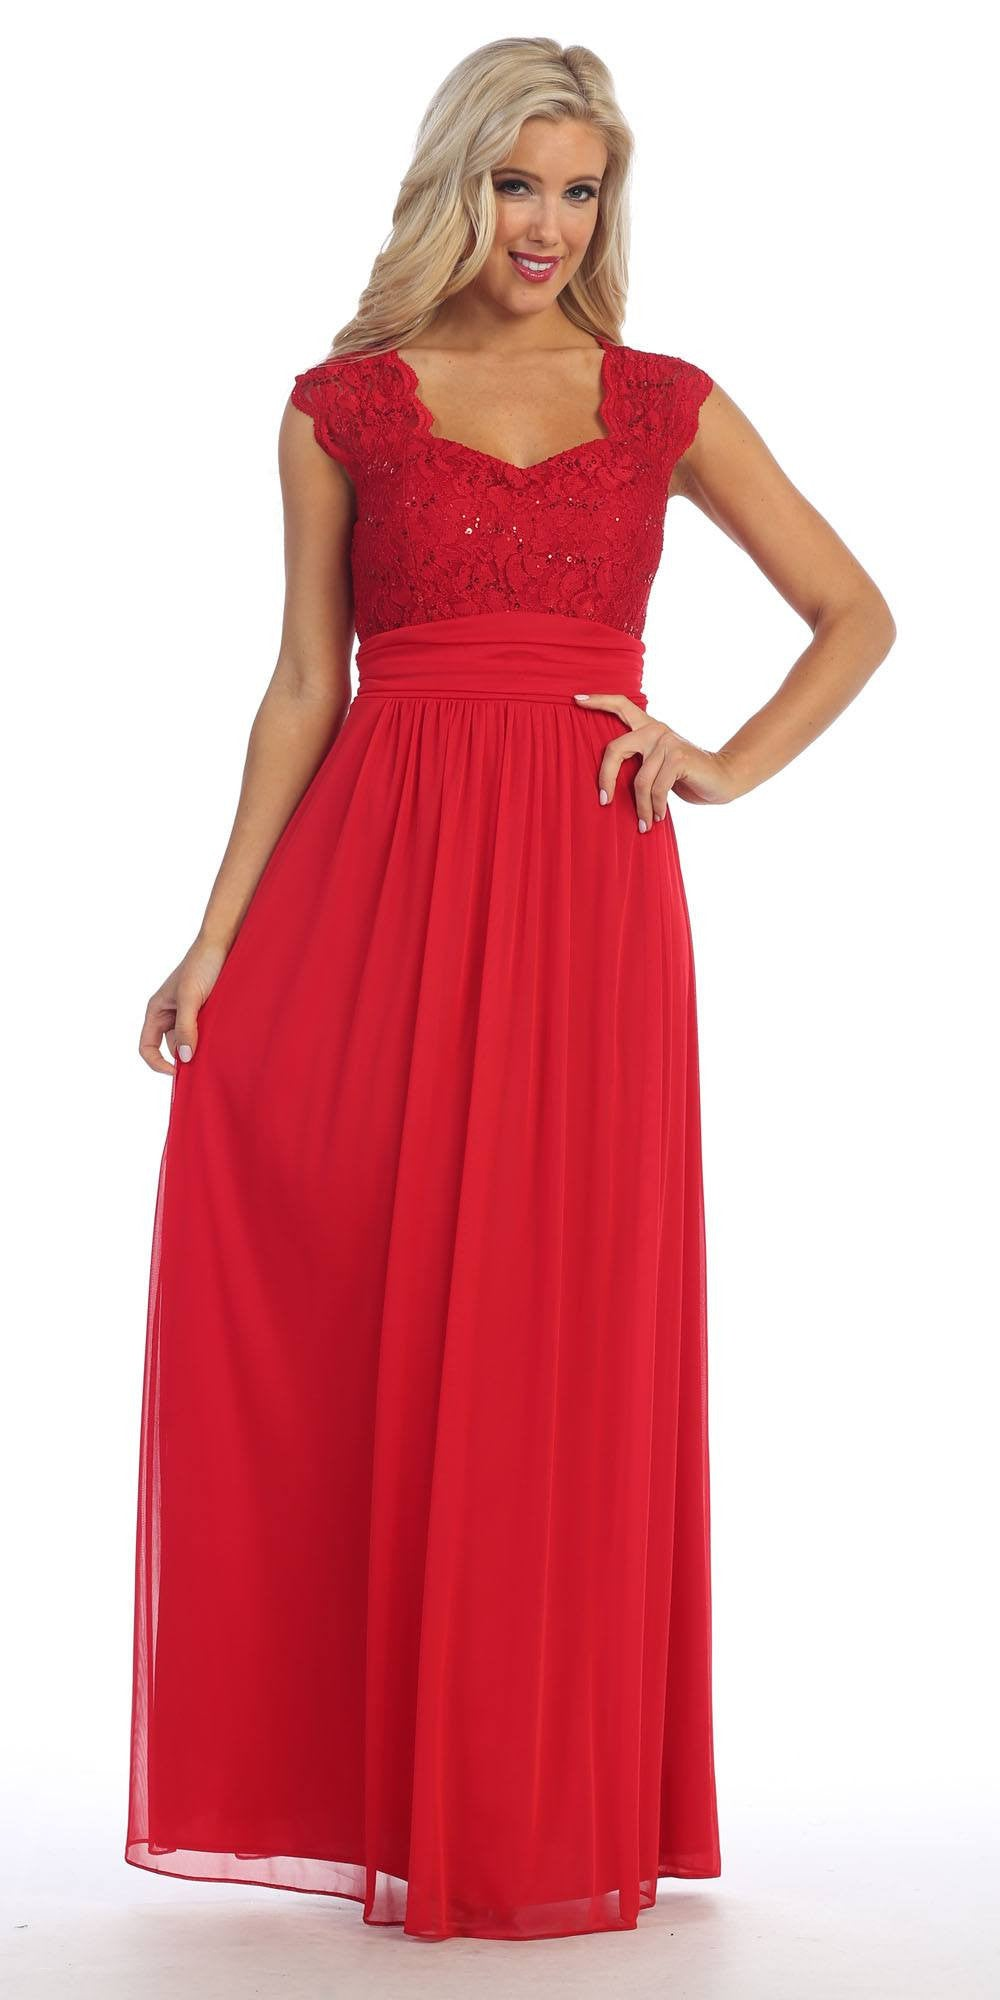 Red Lace Bodice A-Line Long Semi Formal Dress Queen Anne Neckline